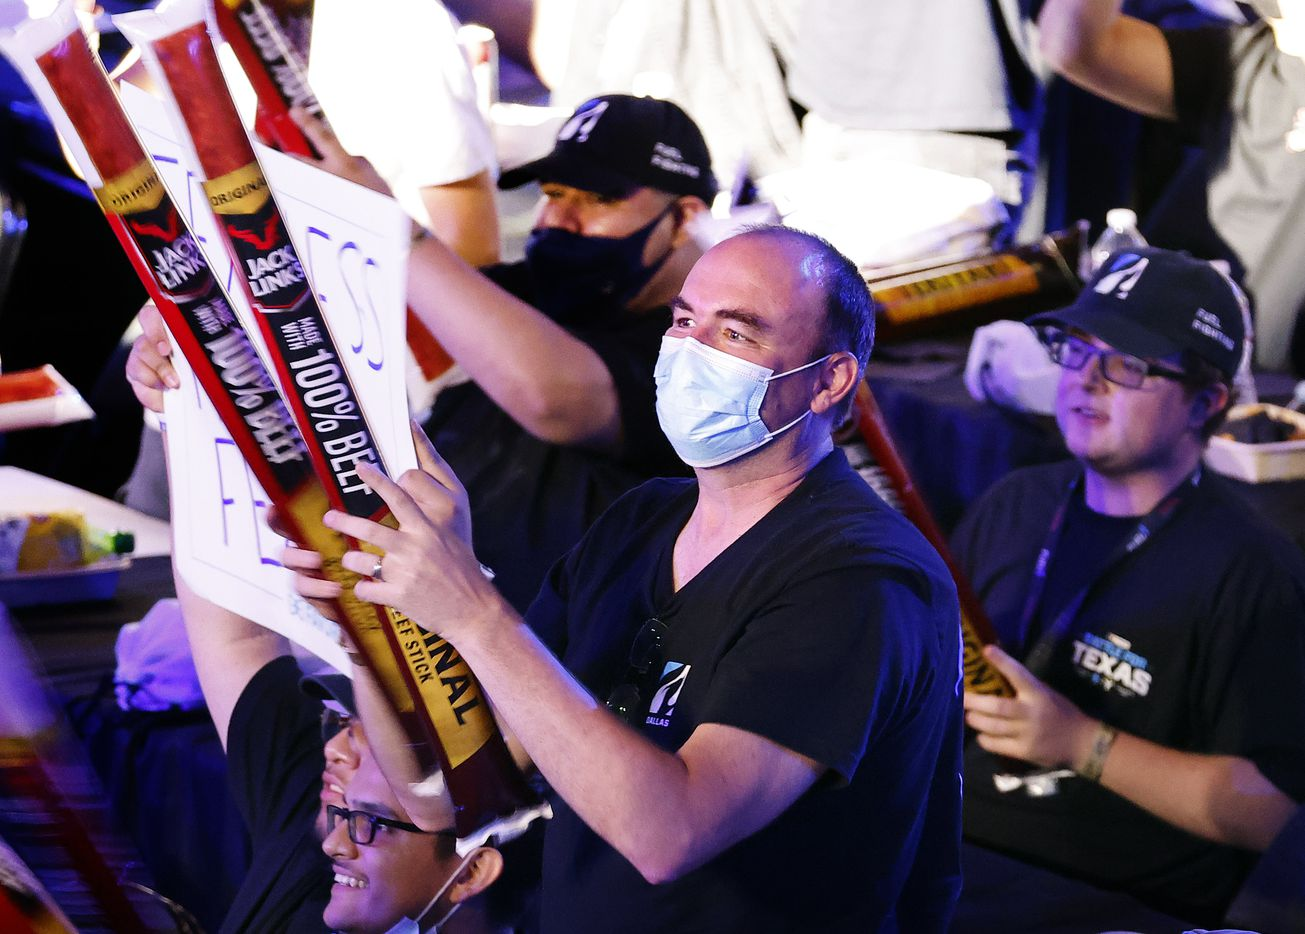 Dallas Fuel fan Collin Corbett (center) slaps his boom sticks as he cheers the team during their Overwatch League match against the Houston Outlaws at Esports Stadium Arlington Friday, July 9, 2021. Dallas Fuel defeated Houston in The Battle for Texas, 3-0. It was the first in-person live competition for fans in over a year. Houston competed from their hometown. (Tom Fox/The Dallas Morning News)